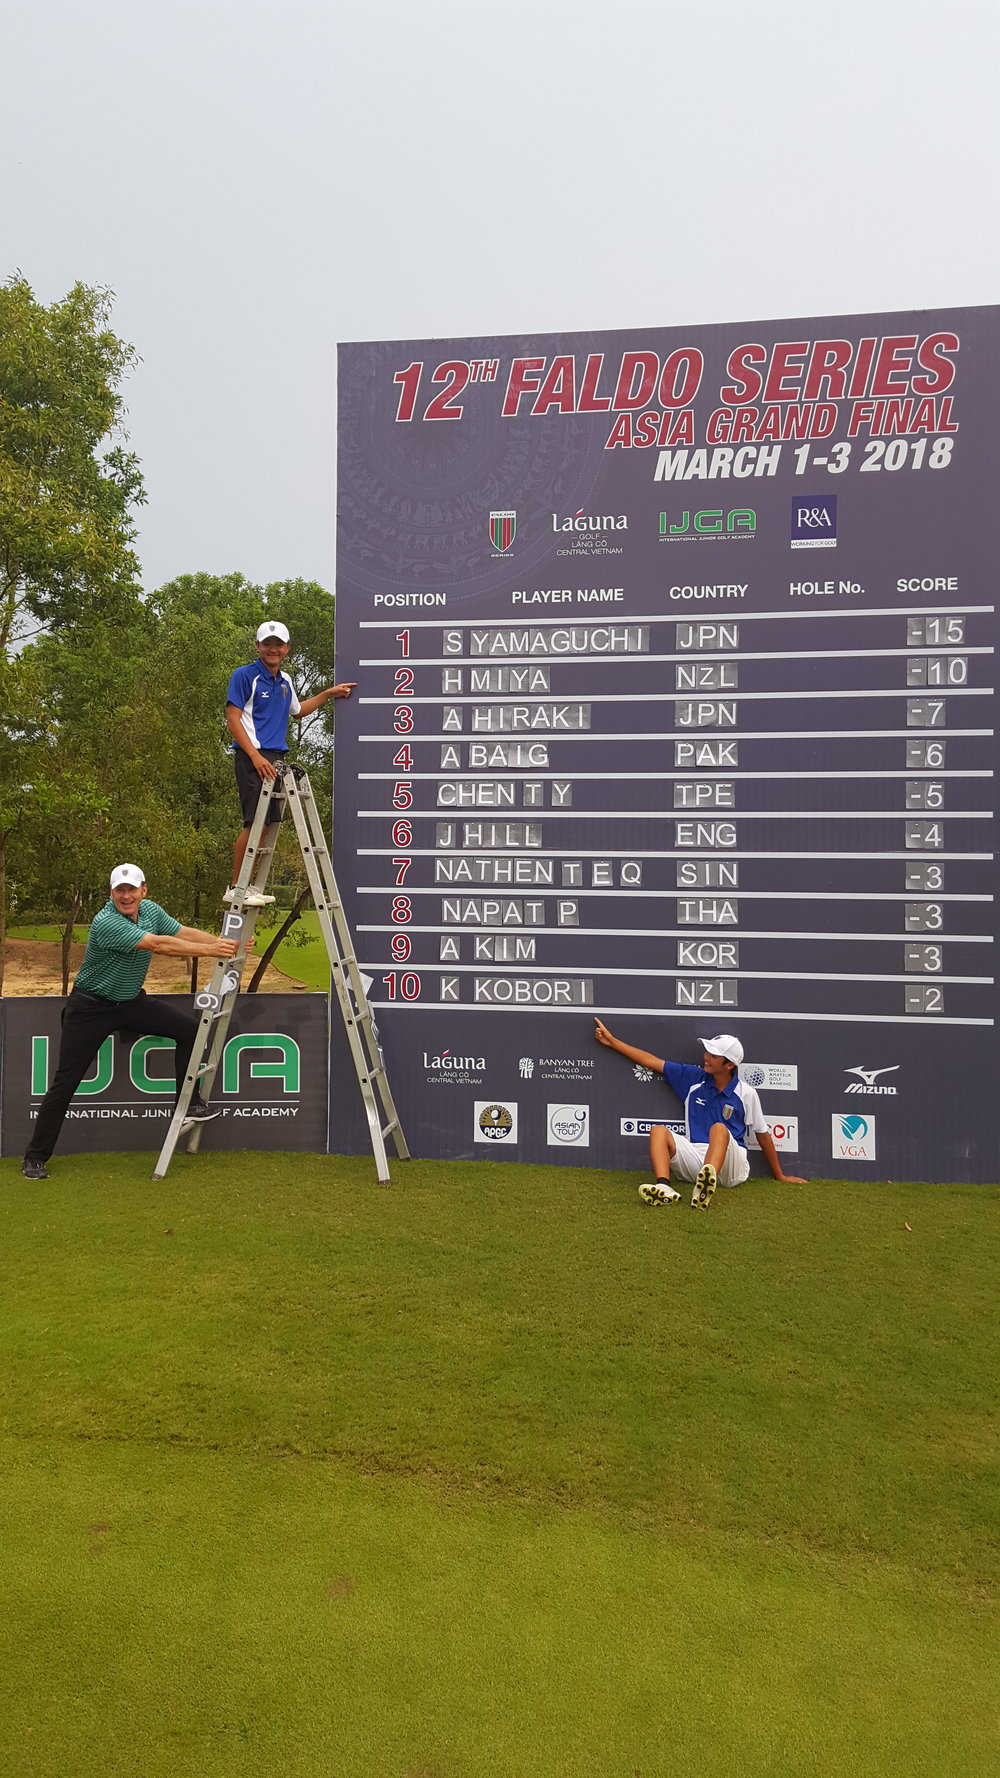 Hiroki Miya from Canterbury points to his name at second on the leaderboard at the Asian regional final of the Faldo Series as does Kazuma Kobori (10th) from Rangiora. Holding the ladder is tournament host Nick Faldo